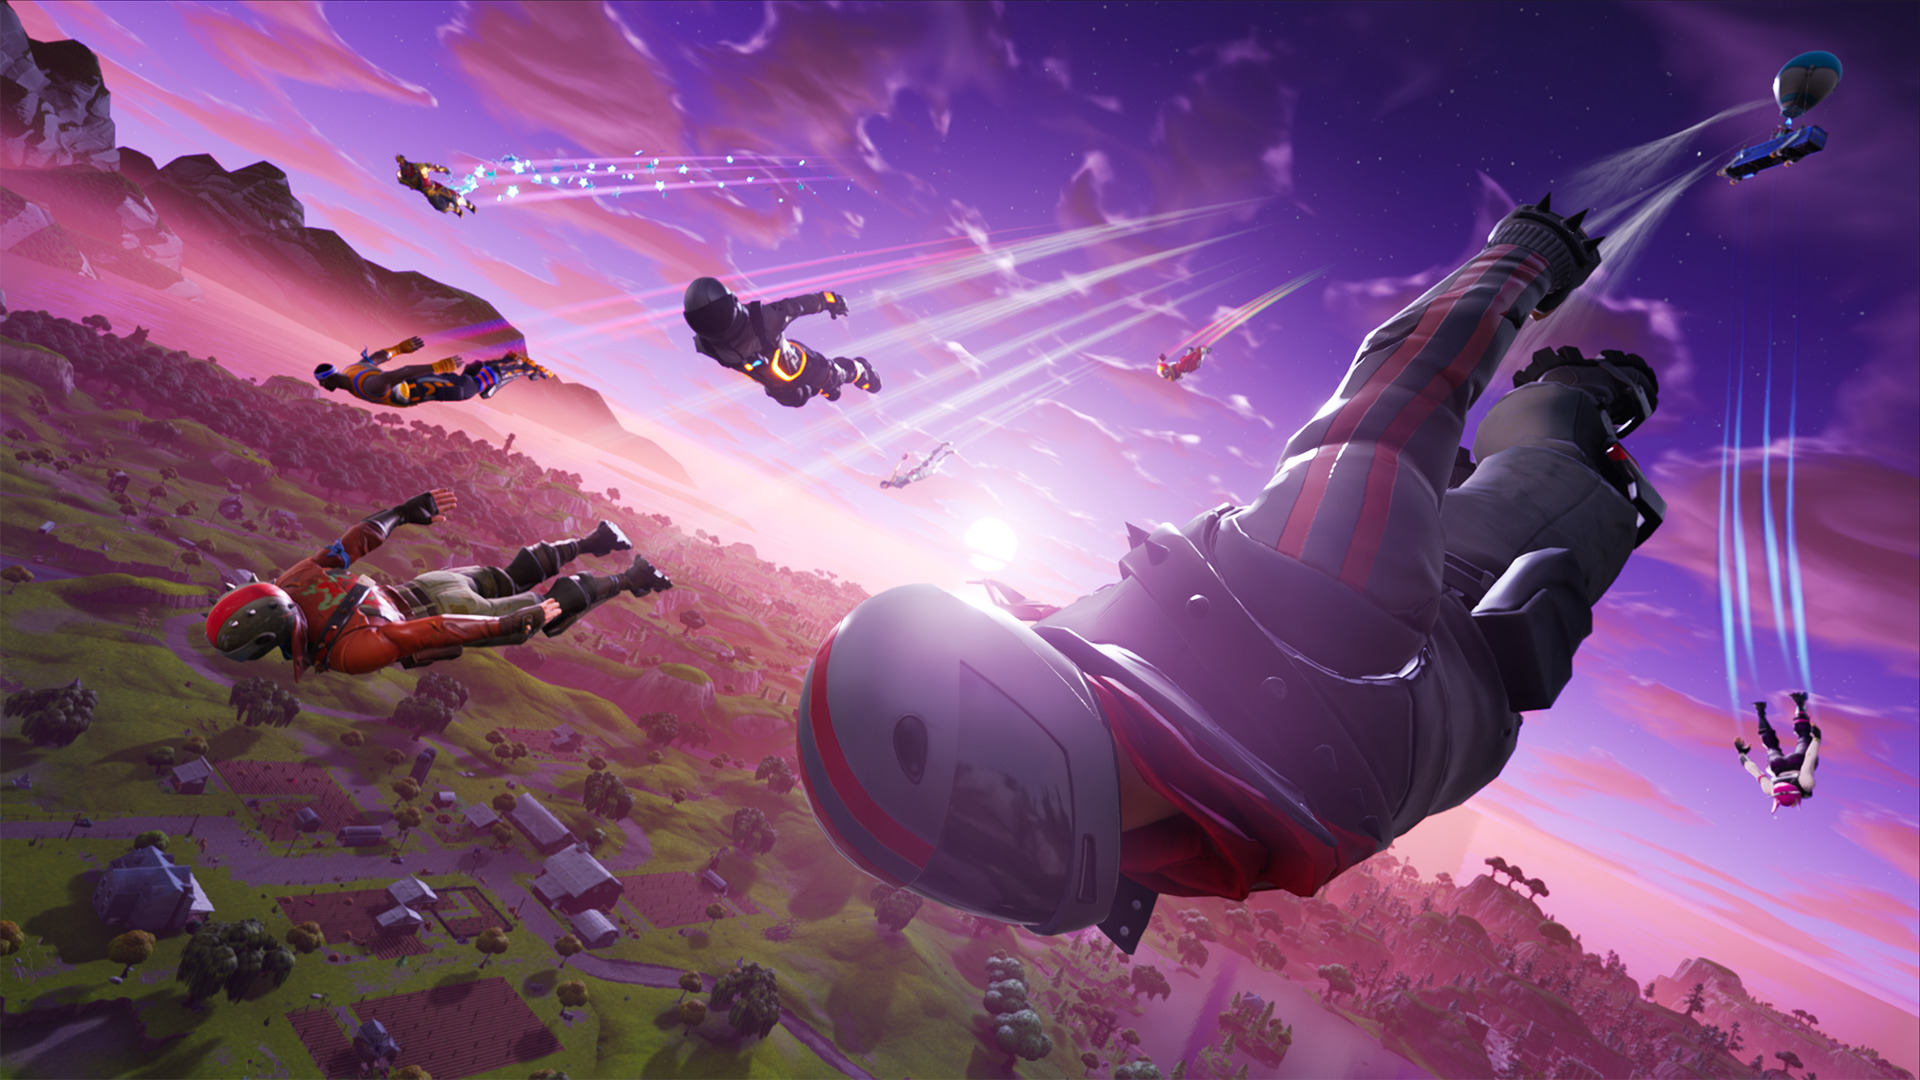 Free Download Fortnites Epic Games Now Valued At 15 Billion Fortnite Intel 1920x1080 For Your Desktop Mobile Tablet Explore 31 Ikonik Fortnite Wallpapers Ikonik Fortnite Wallpapers Fortnite Wallpapers Fortnite Wallpaper Despite a lack of an announcement, the fortnite/intel collab is reportedly live following a leak over the weekend. 15 billion fortnite intel 1920x1080